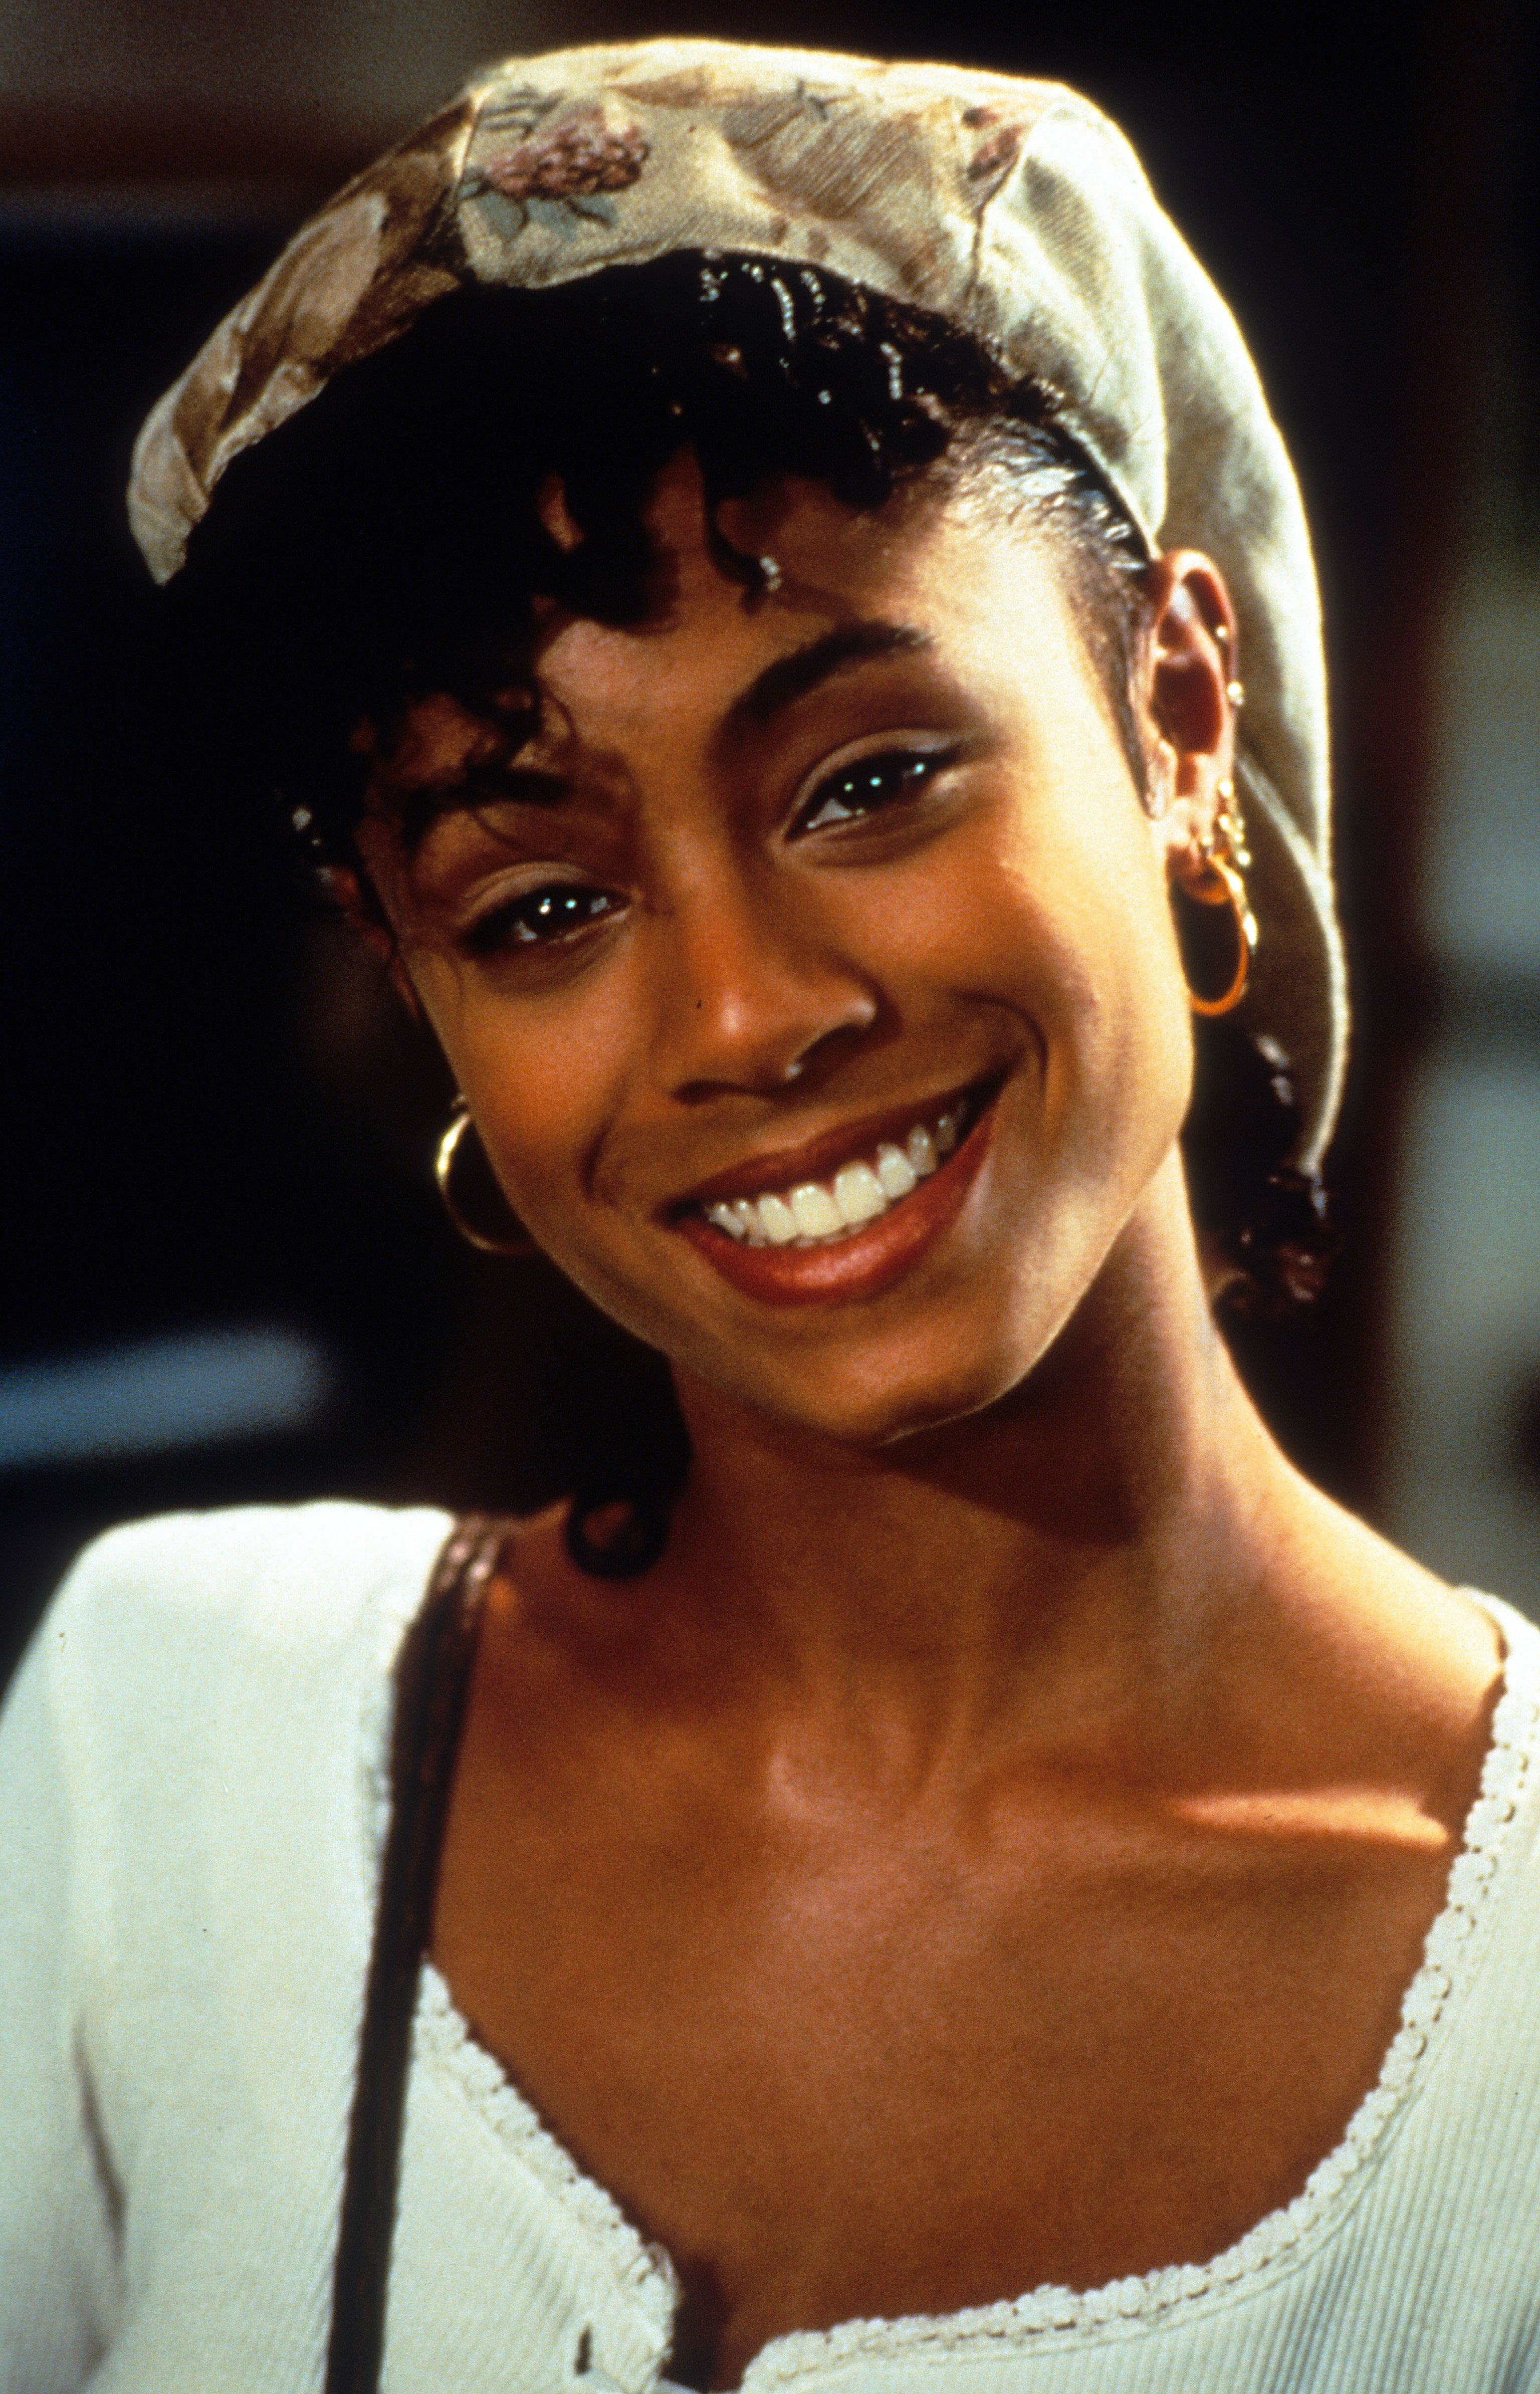 Jada Pinkett Smith on set of the film 'Jason's Lyric', 1994. (Photo by Gramercy/Getty Images)